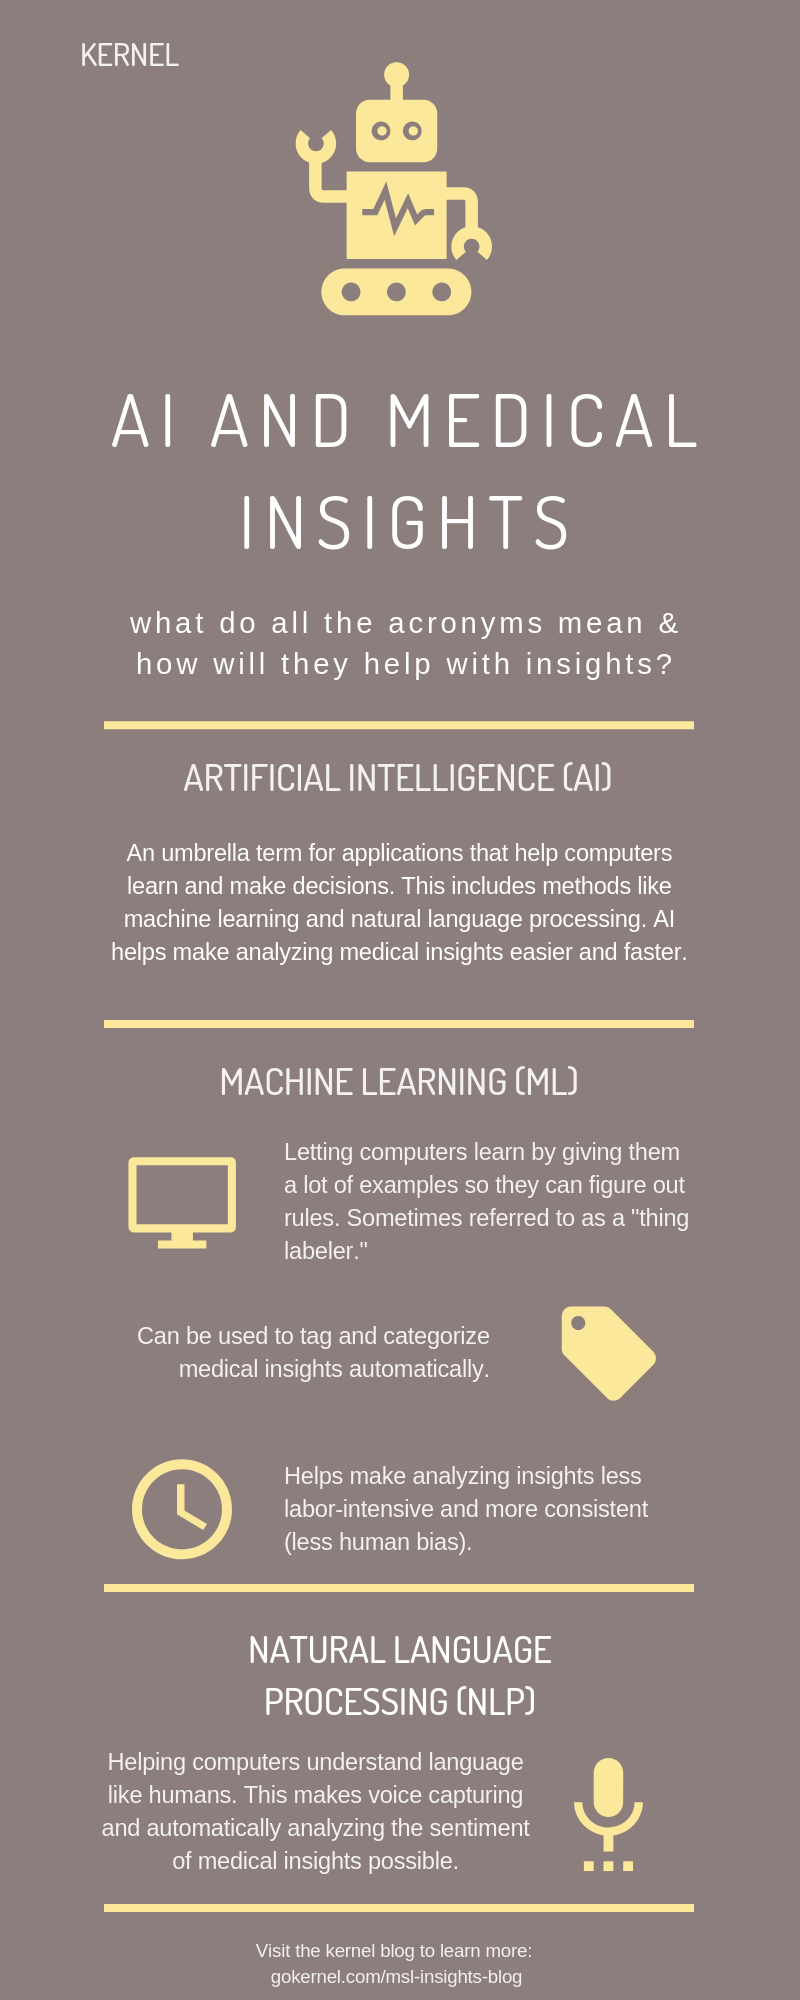 AI and Medical Insights kernel infographic.png